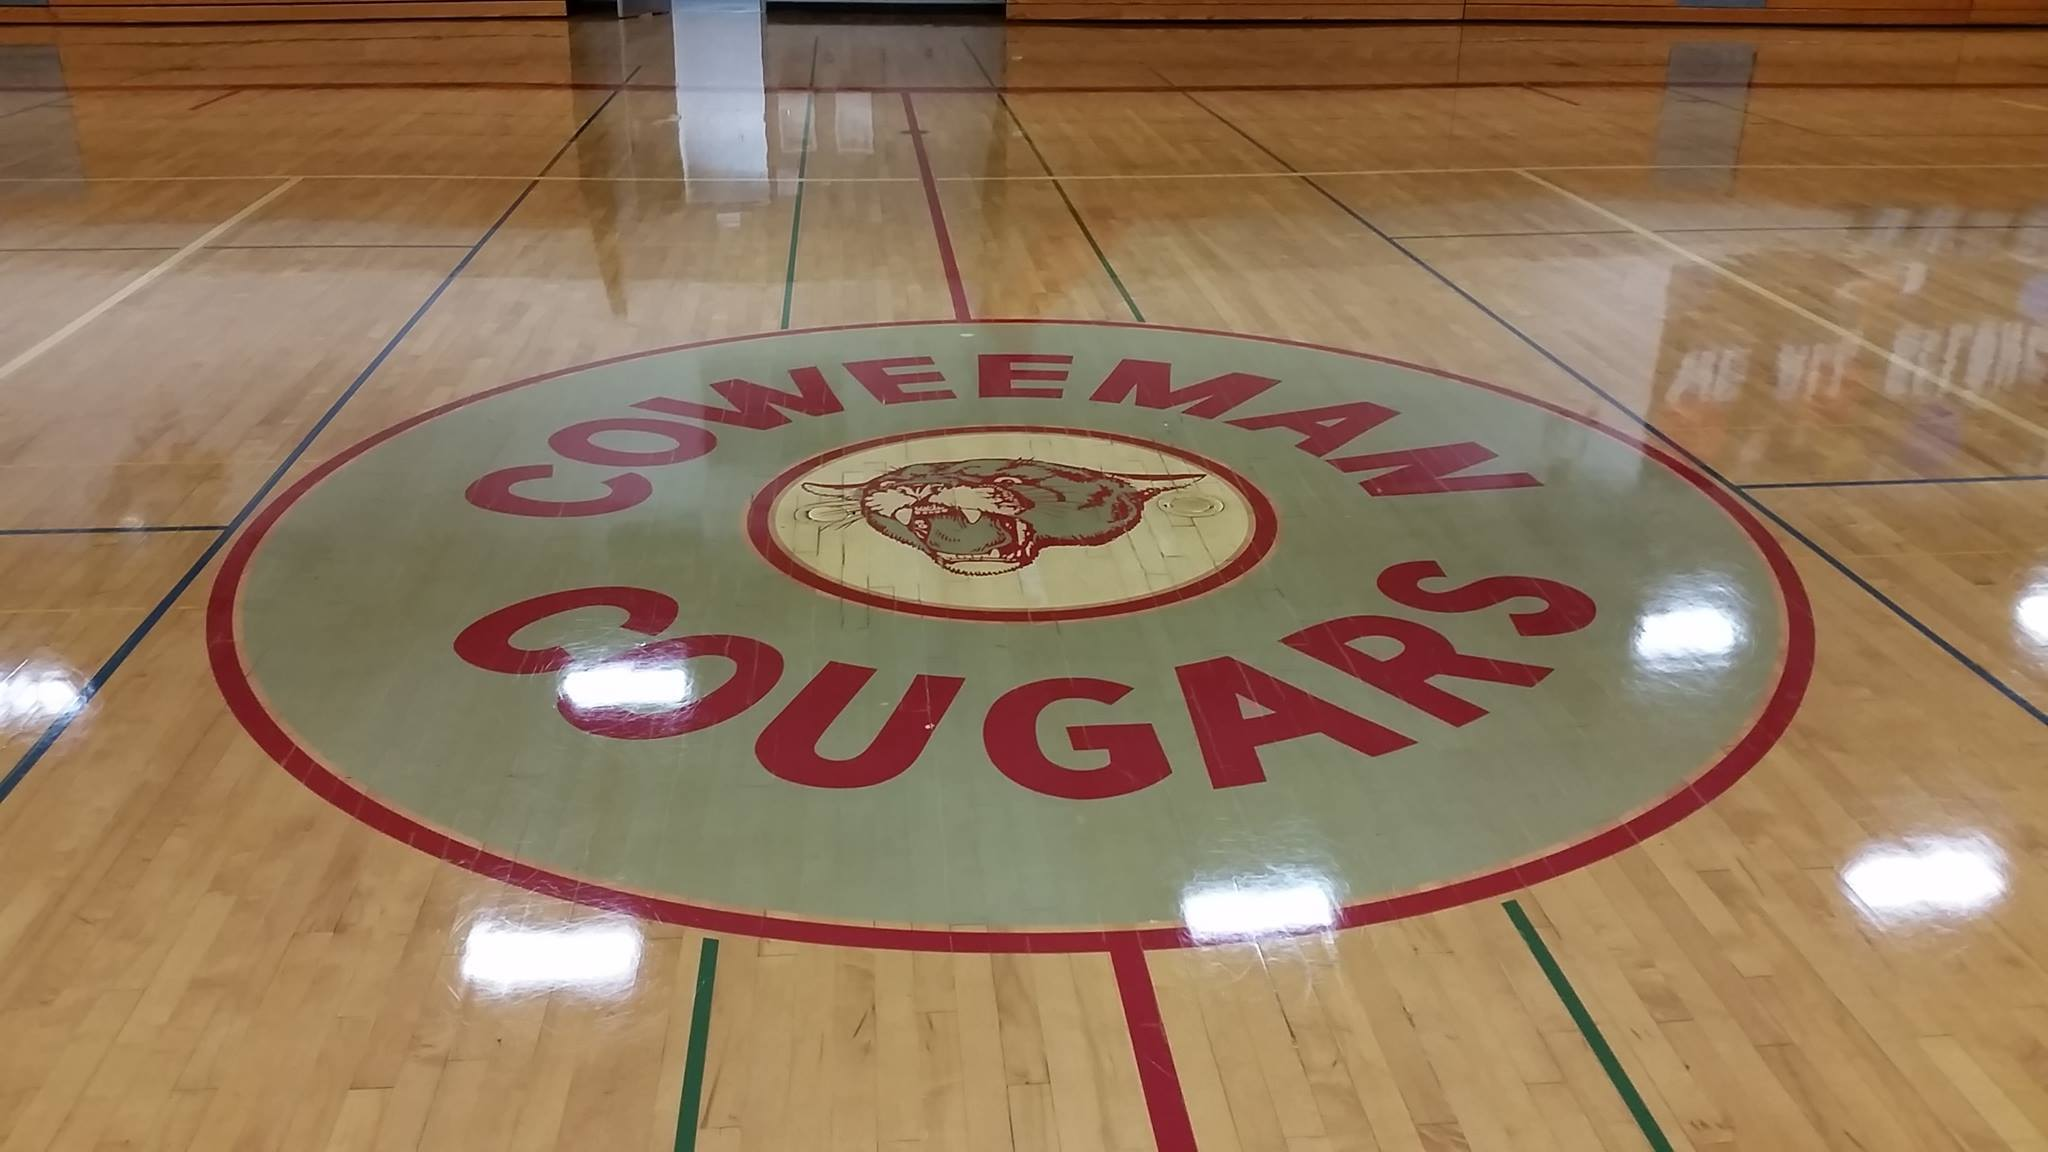 logo from the gym floor